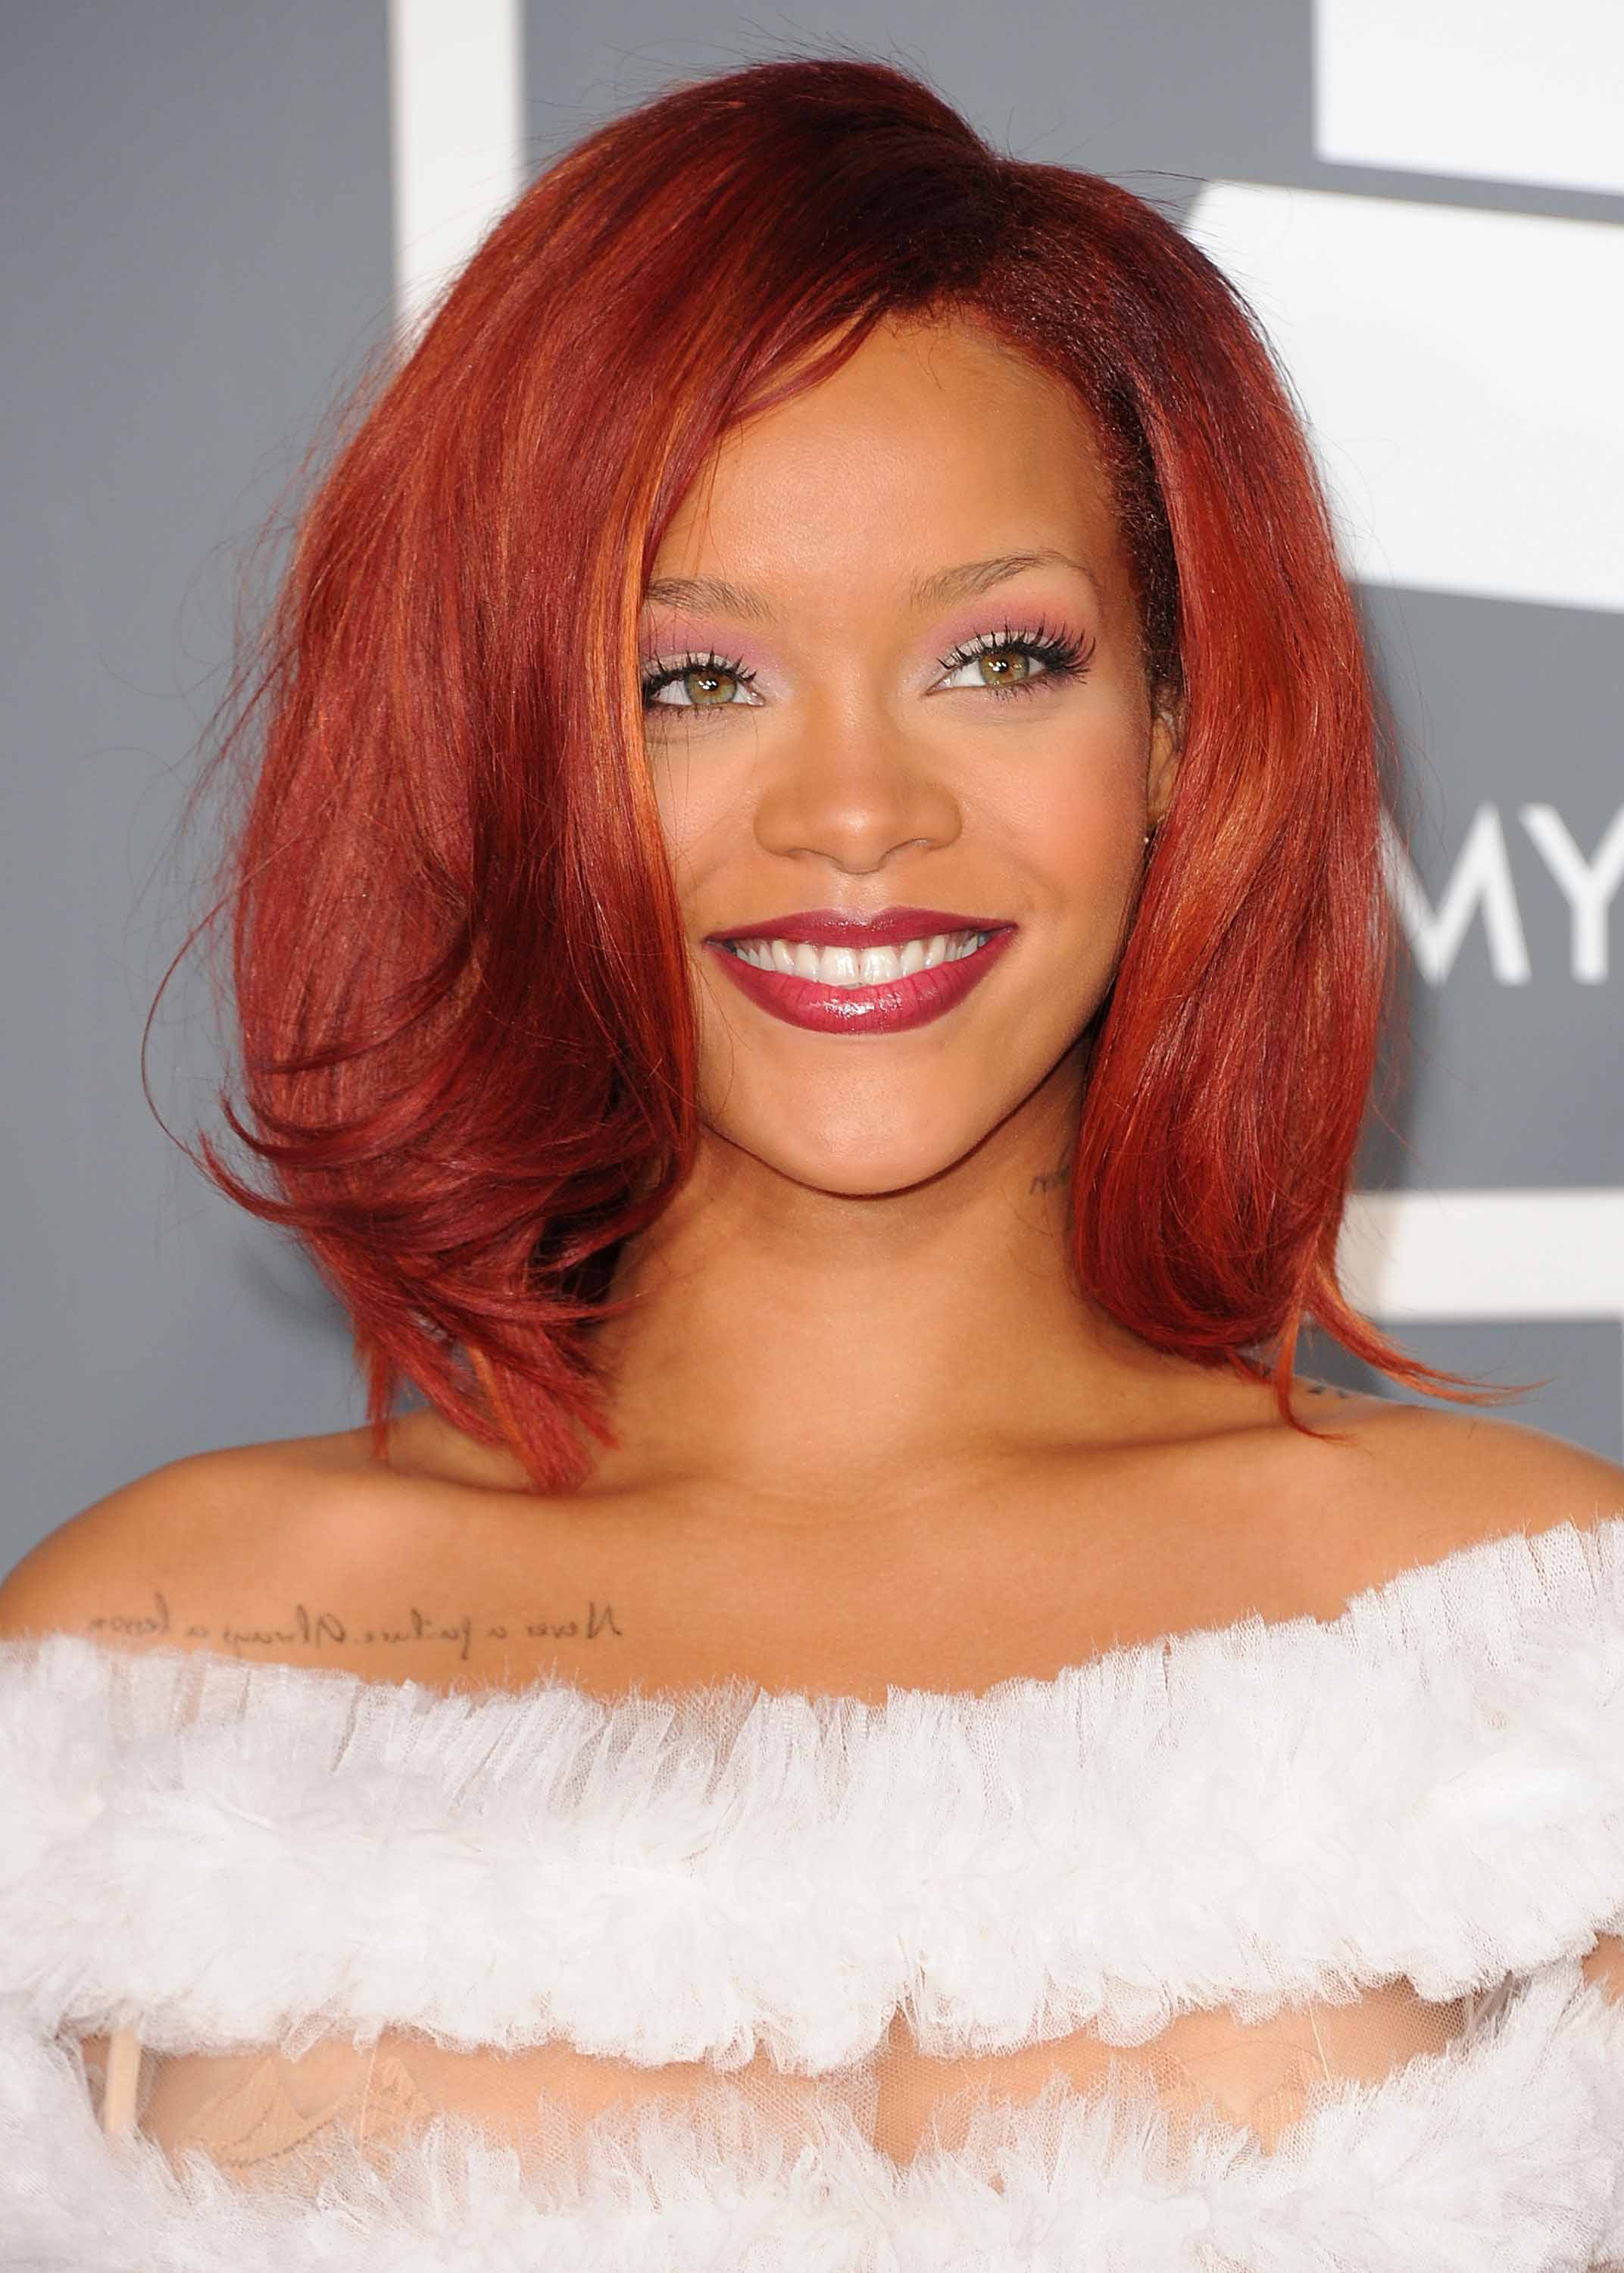 Famous redheads: All Things Hair - IMAGE - Rihanna red bob